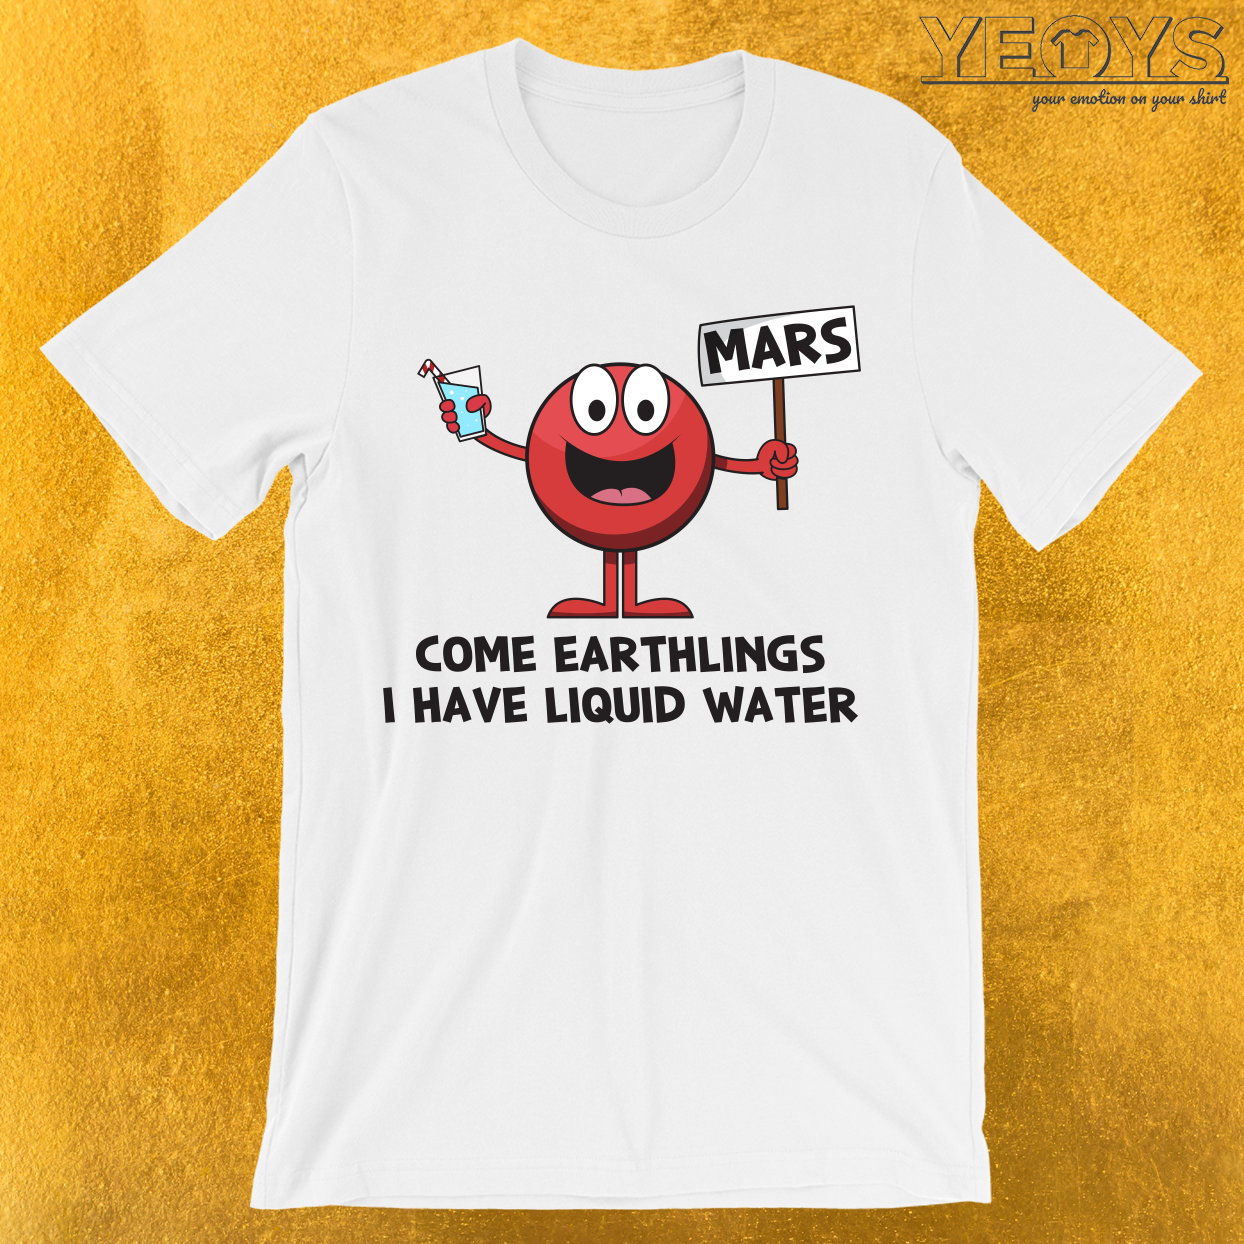 Come Earthlings I Have Liquid Water T-Shirt